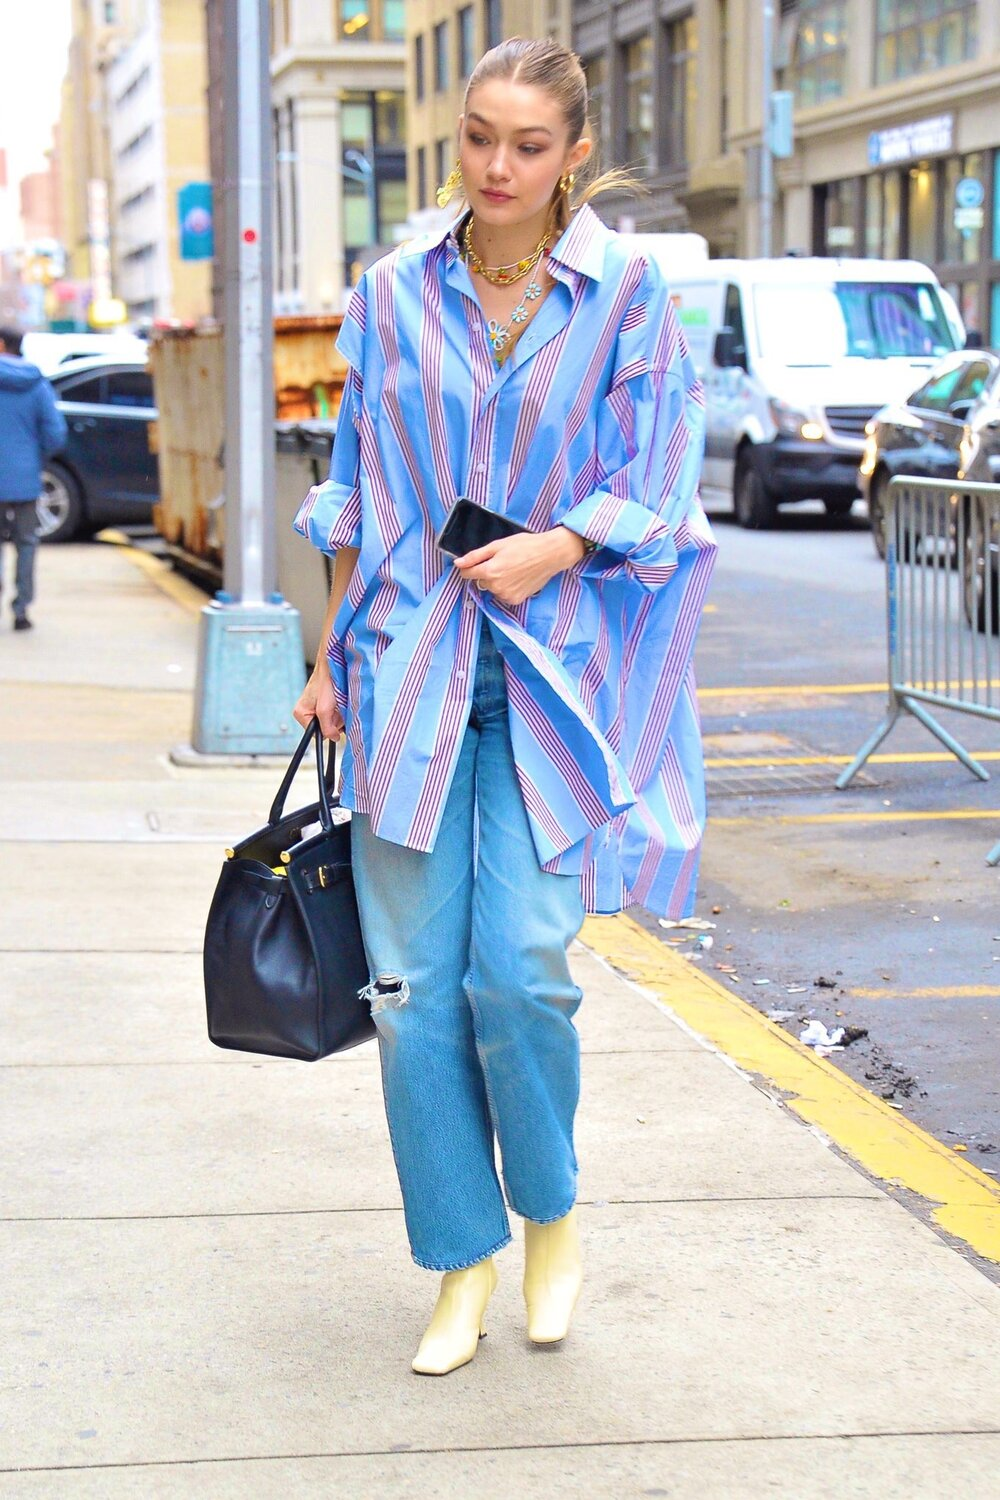 gigi-hadid-blue-striped-shirt.jpg